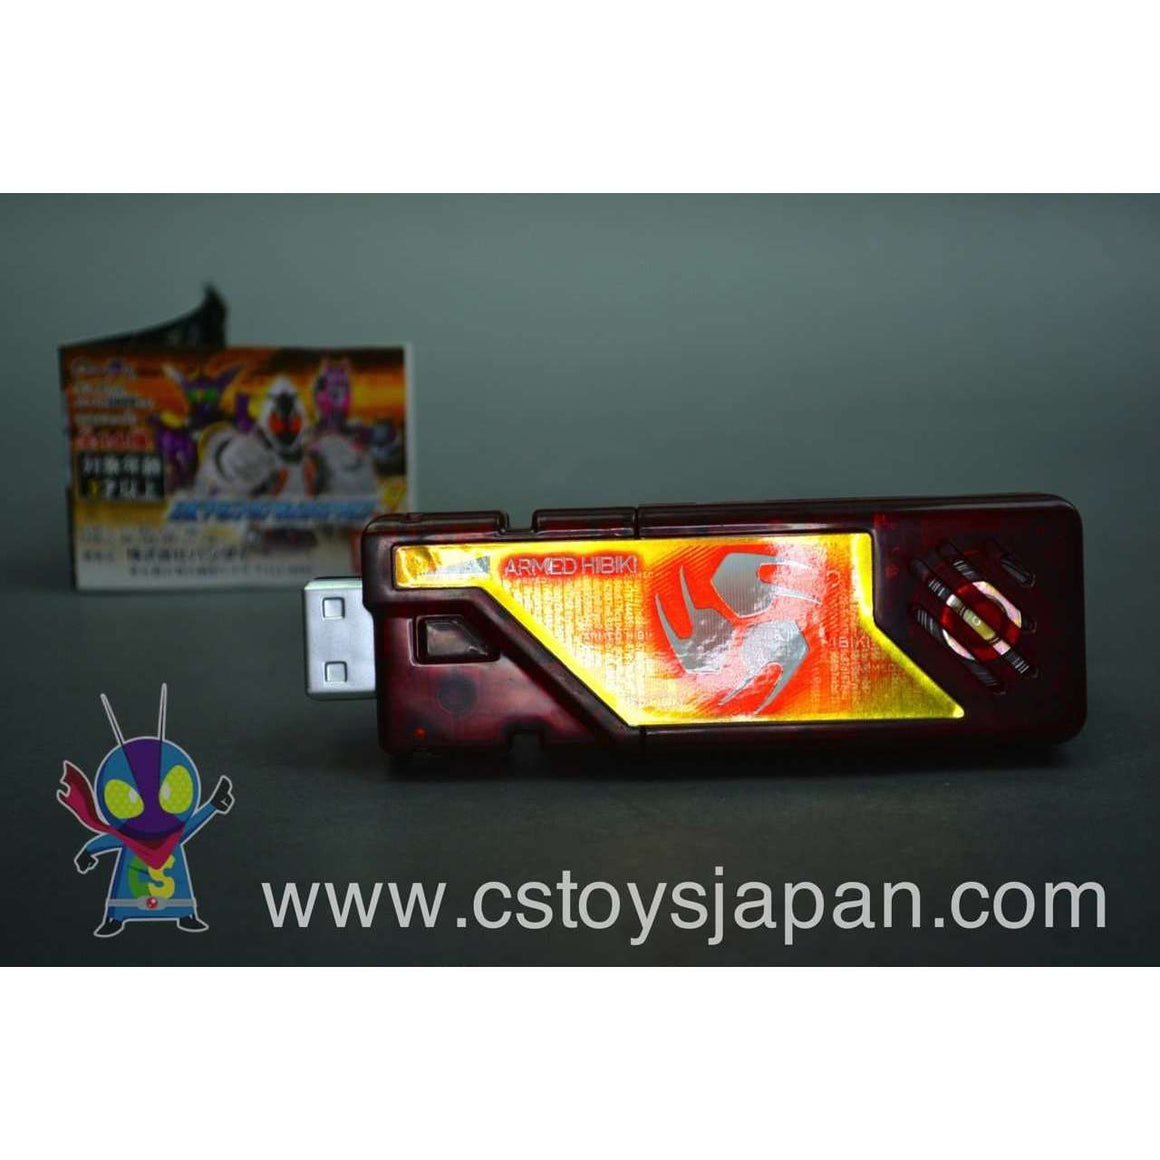 CSTOYS INTERNATIONAL:[LOOSE] Kamen Rider W: DX Sound Capsule Gaia Memory Vol.9 #05 Armed Hibiki